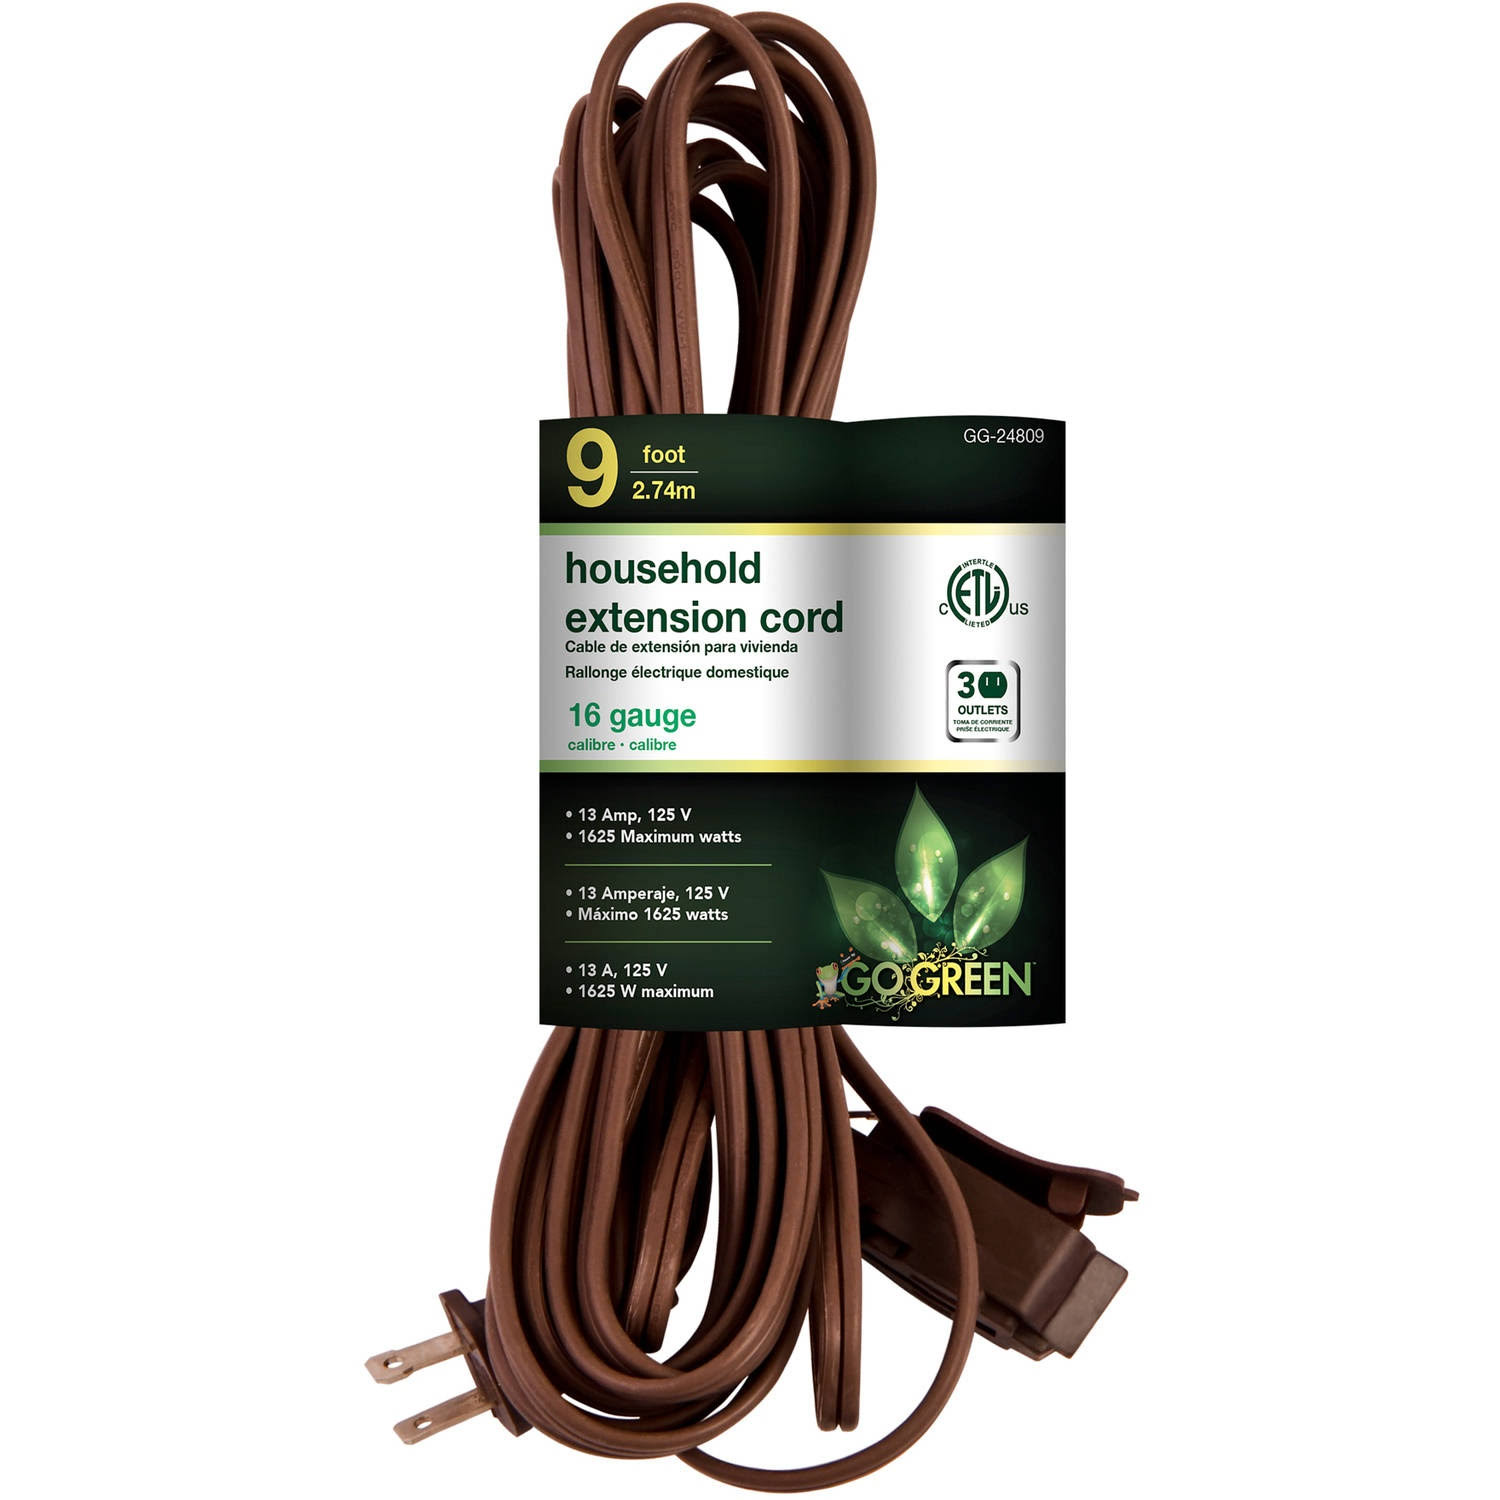 'GoGreen Power Household Extension Cord - Brown, 9'